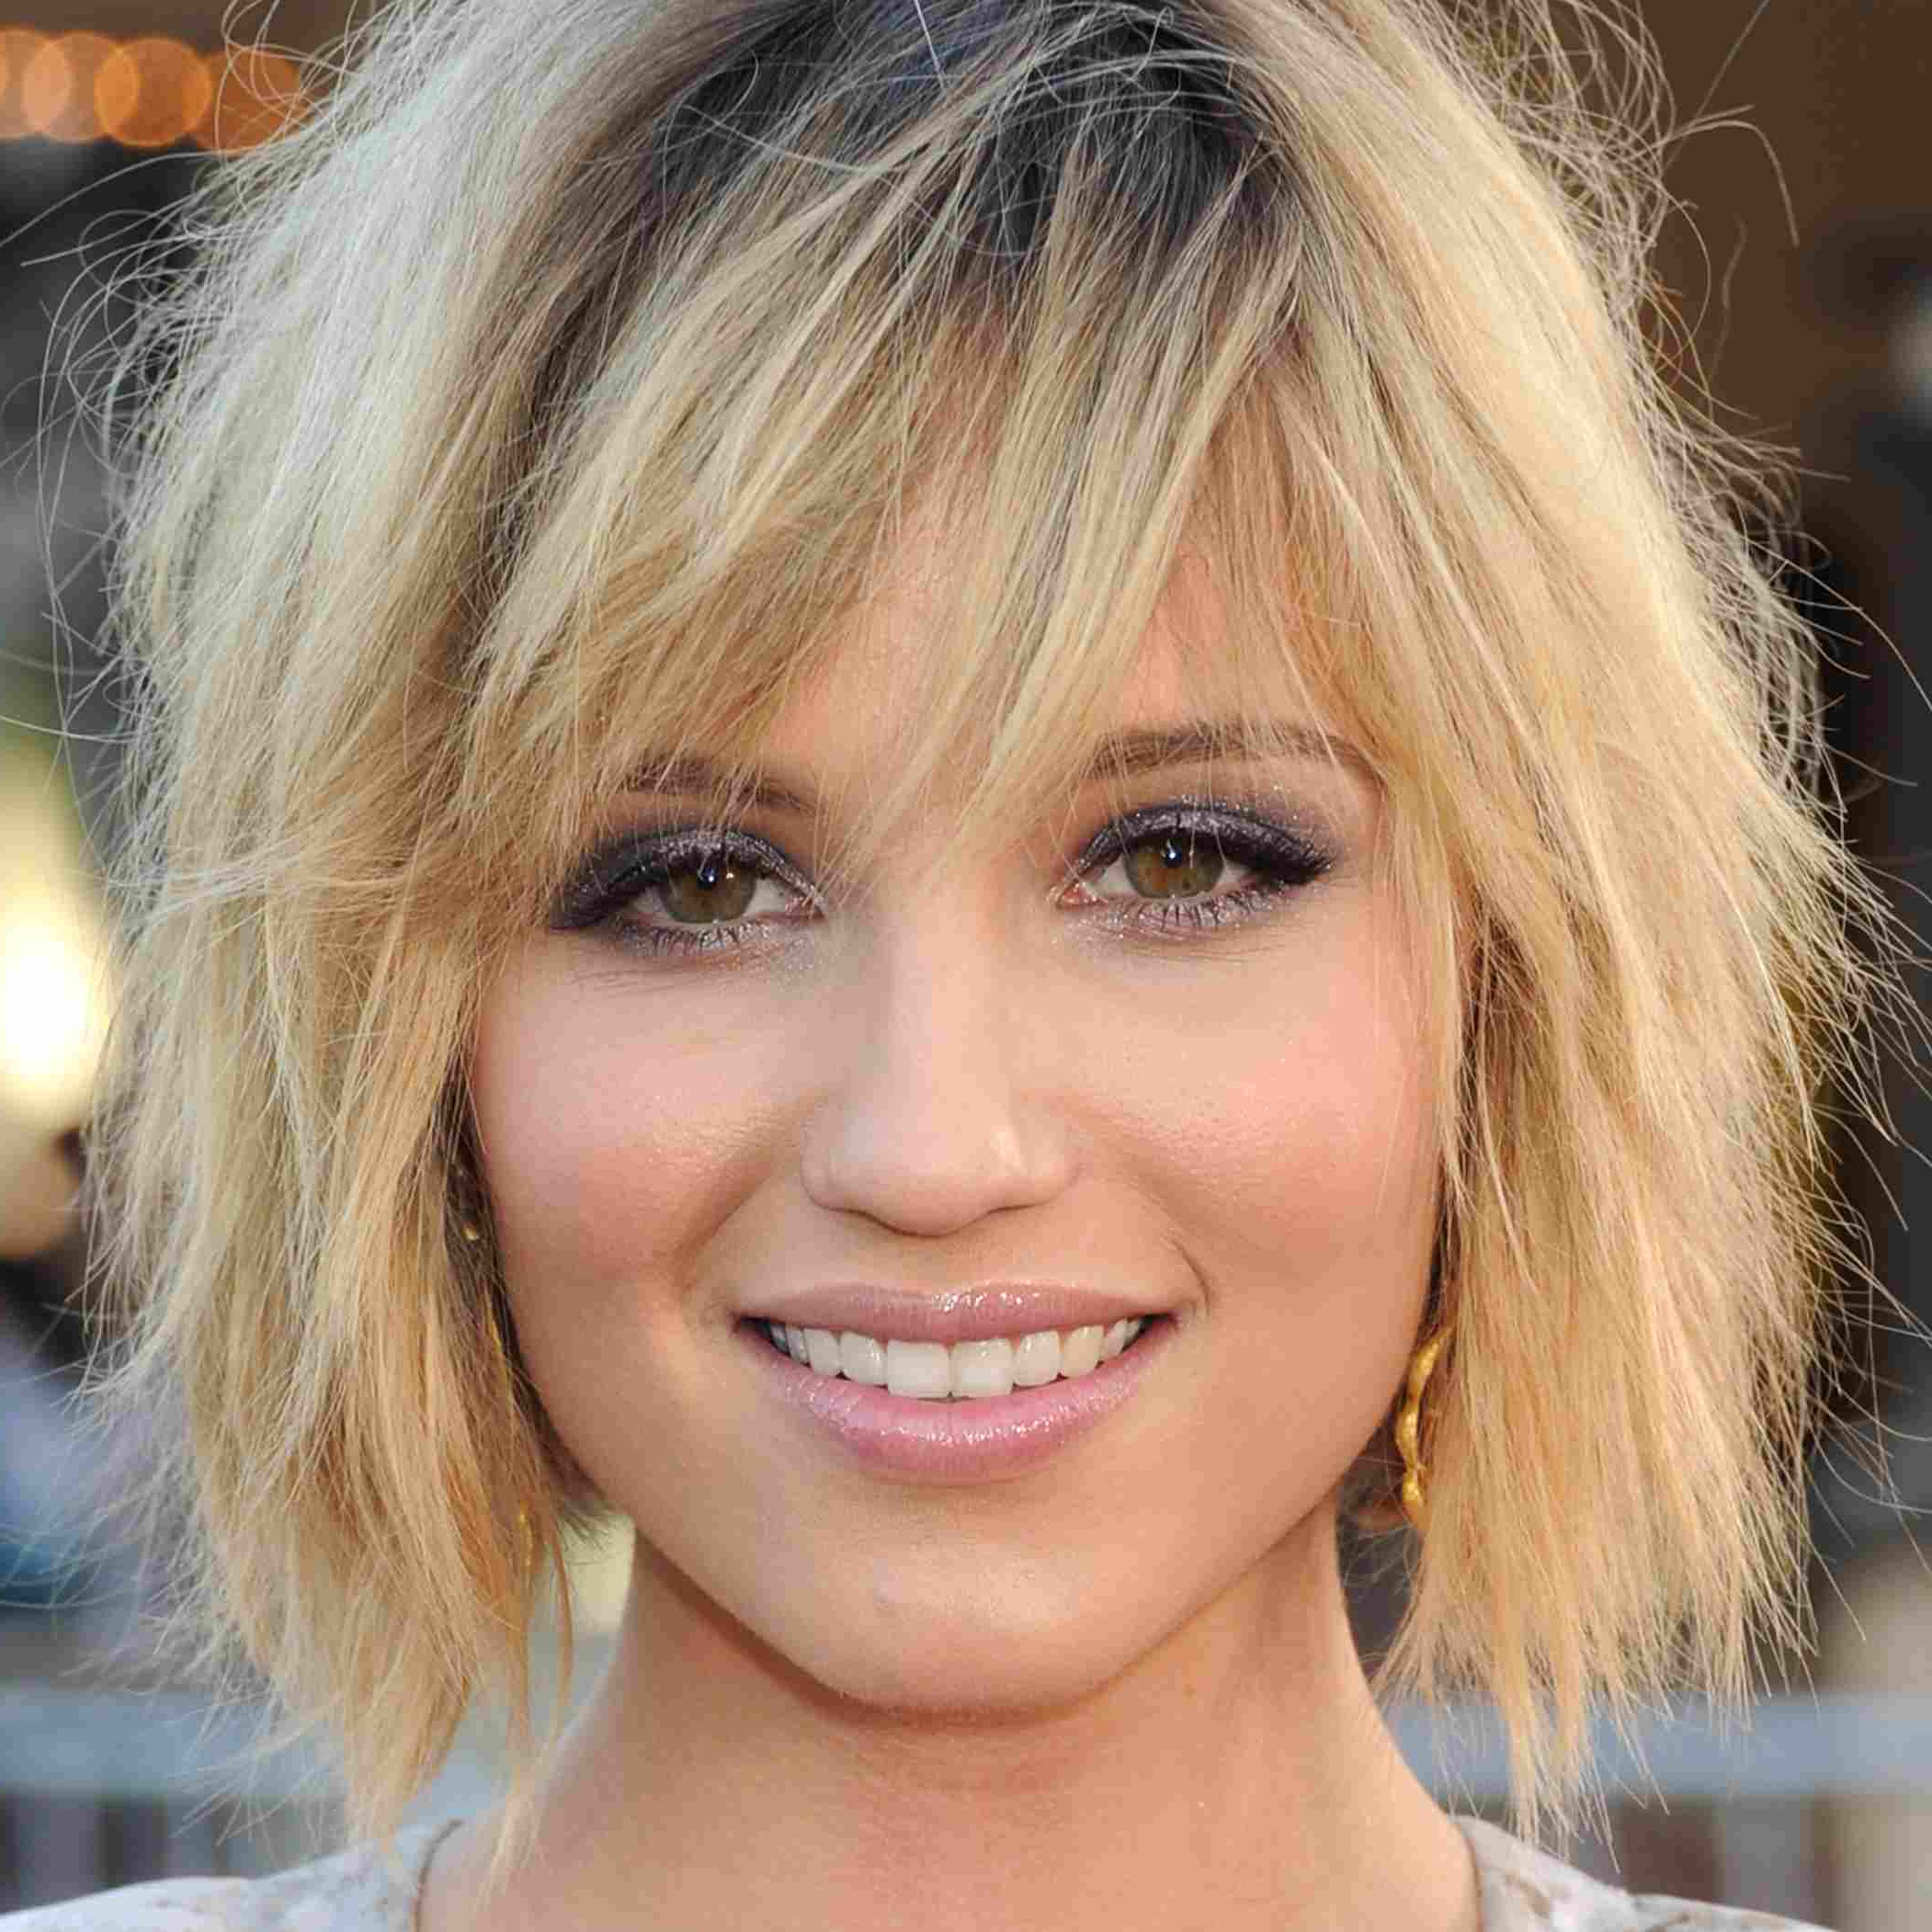 Can't Miss Shag Haircuts, From Short To Long Within Jaw Length Shaggy Bob Hairstyles (View 15 of 20)